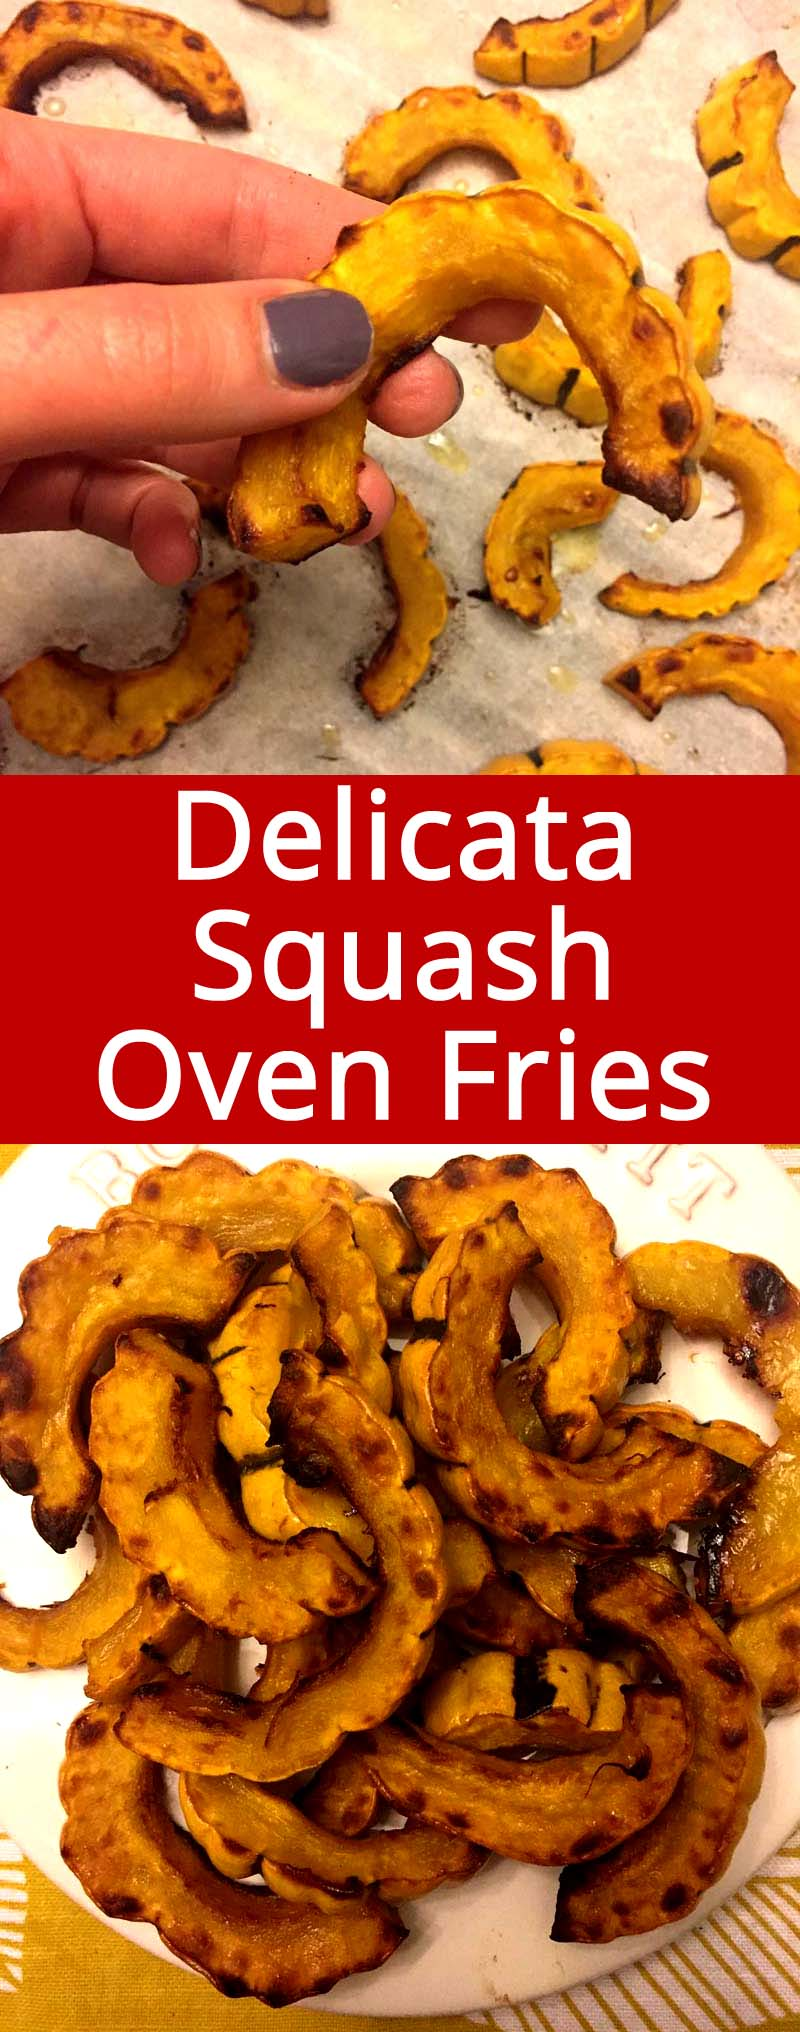 These delicata squash fries are amazing! These are my favorite healthy oven baked fries! We just can't stop eating them!